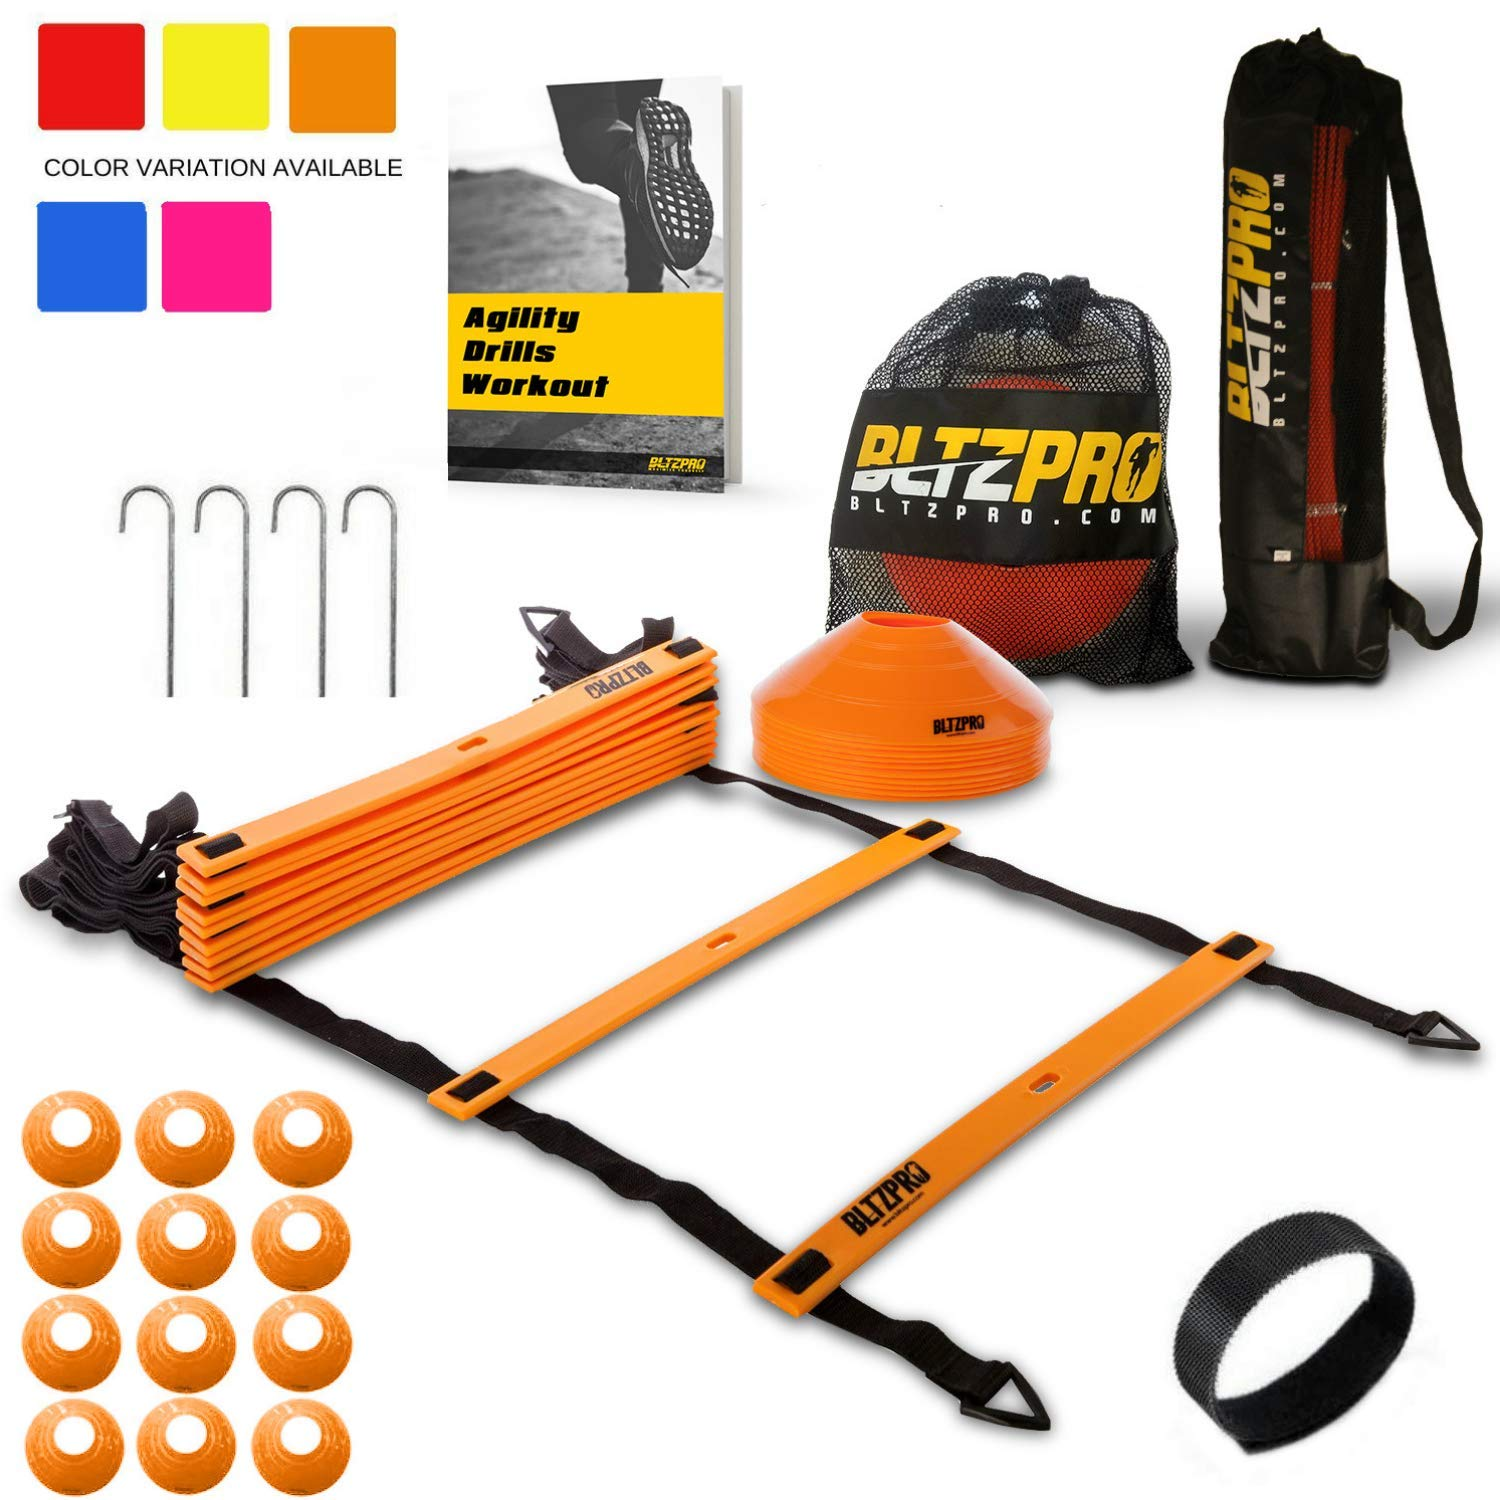 Bltzpro Agility Ladder with Soccer Cones- A Speed Training Equipment for Football and Team Sports Skills Practice. Ideal for Kids Coaching and Conditioning Includes 2 Bags & 24 Agility Drills eBook